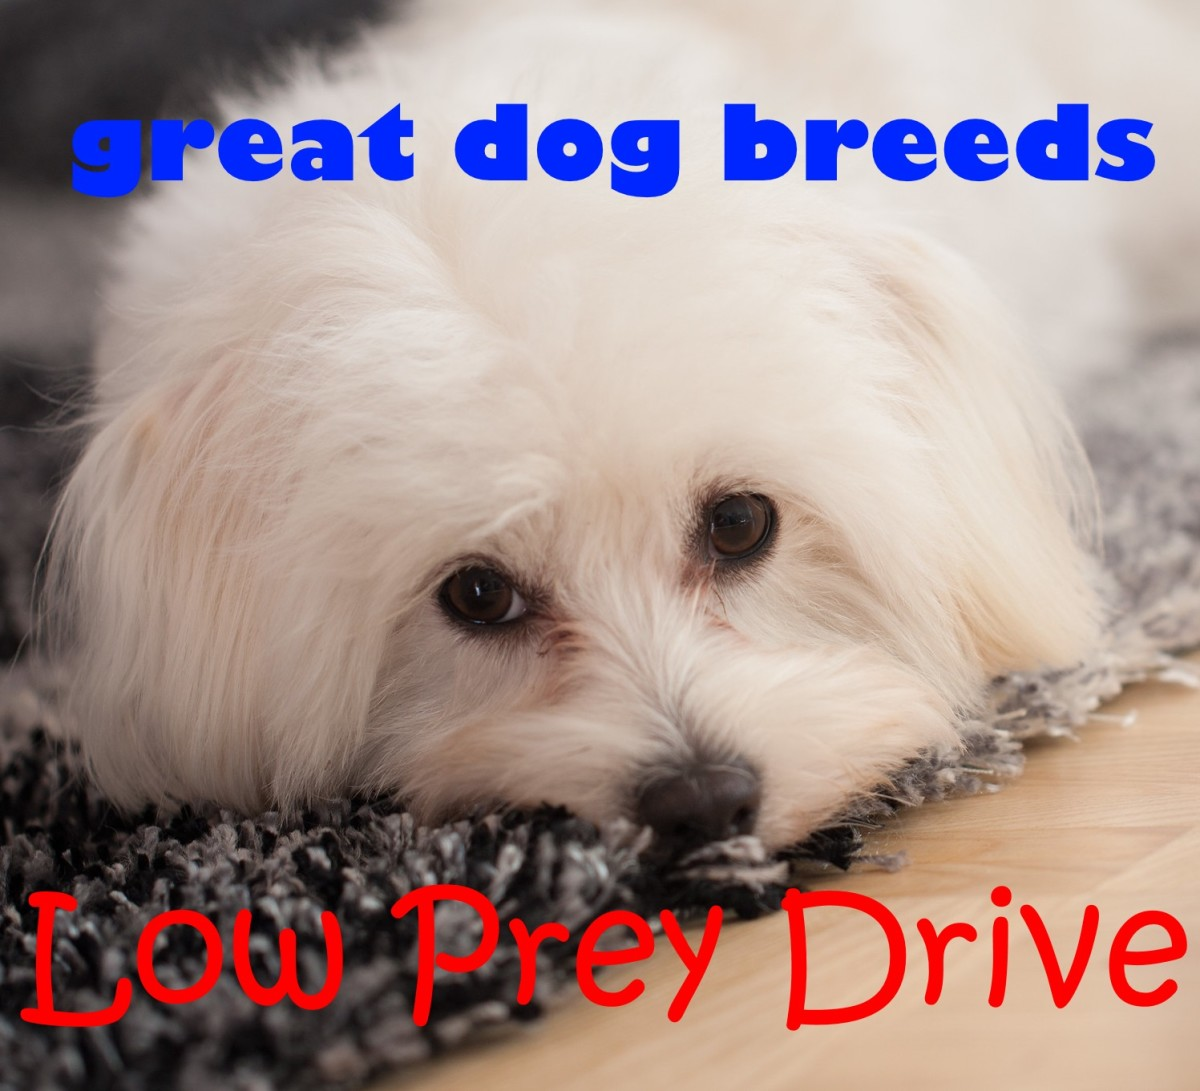 Maltese are one of the great dog breeds with low prey drive.